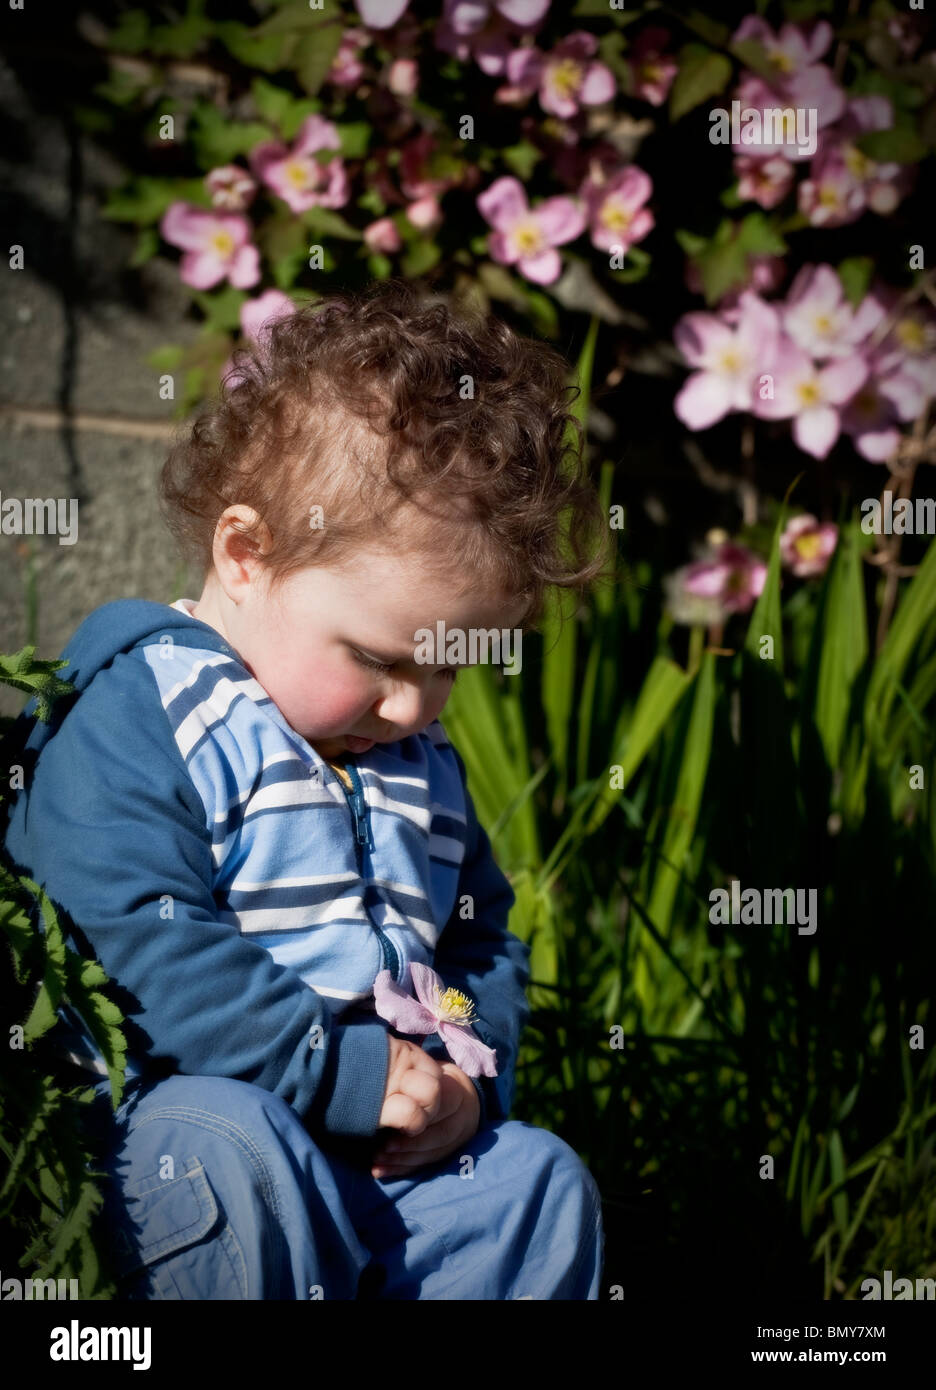 Male Toddler under 18 months old sitting looking at a pink flower. - Stock Image